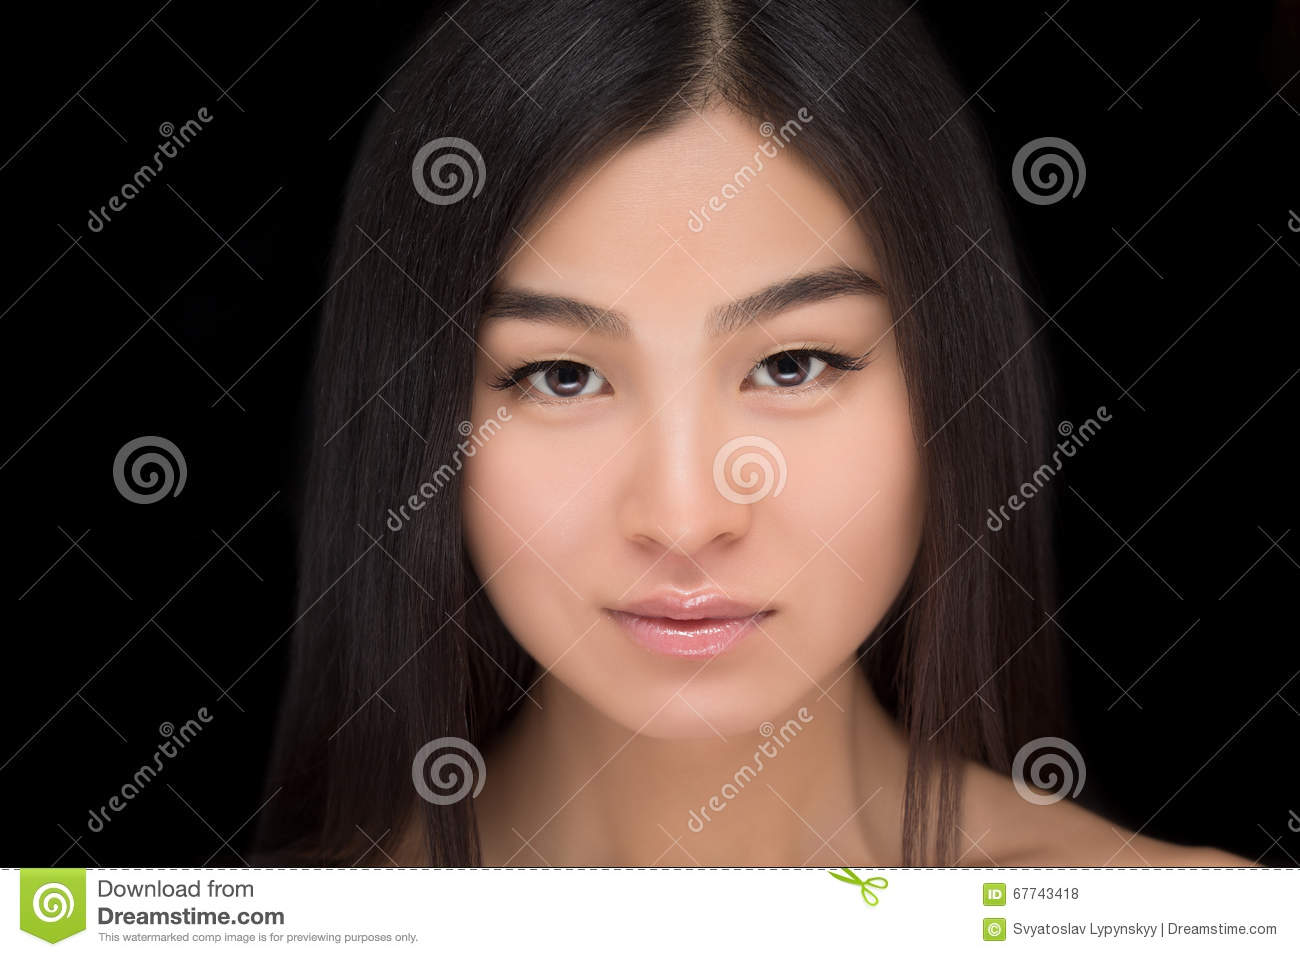 Asian lady face